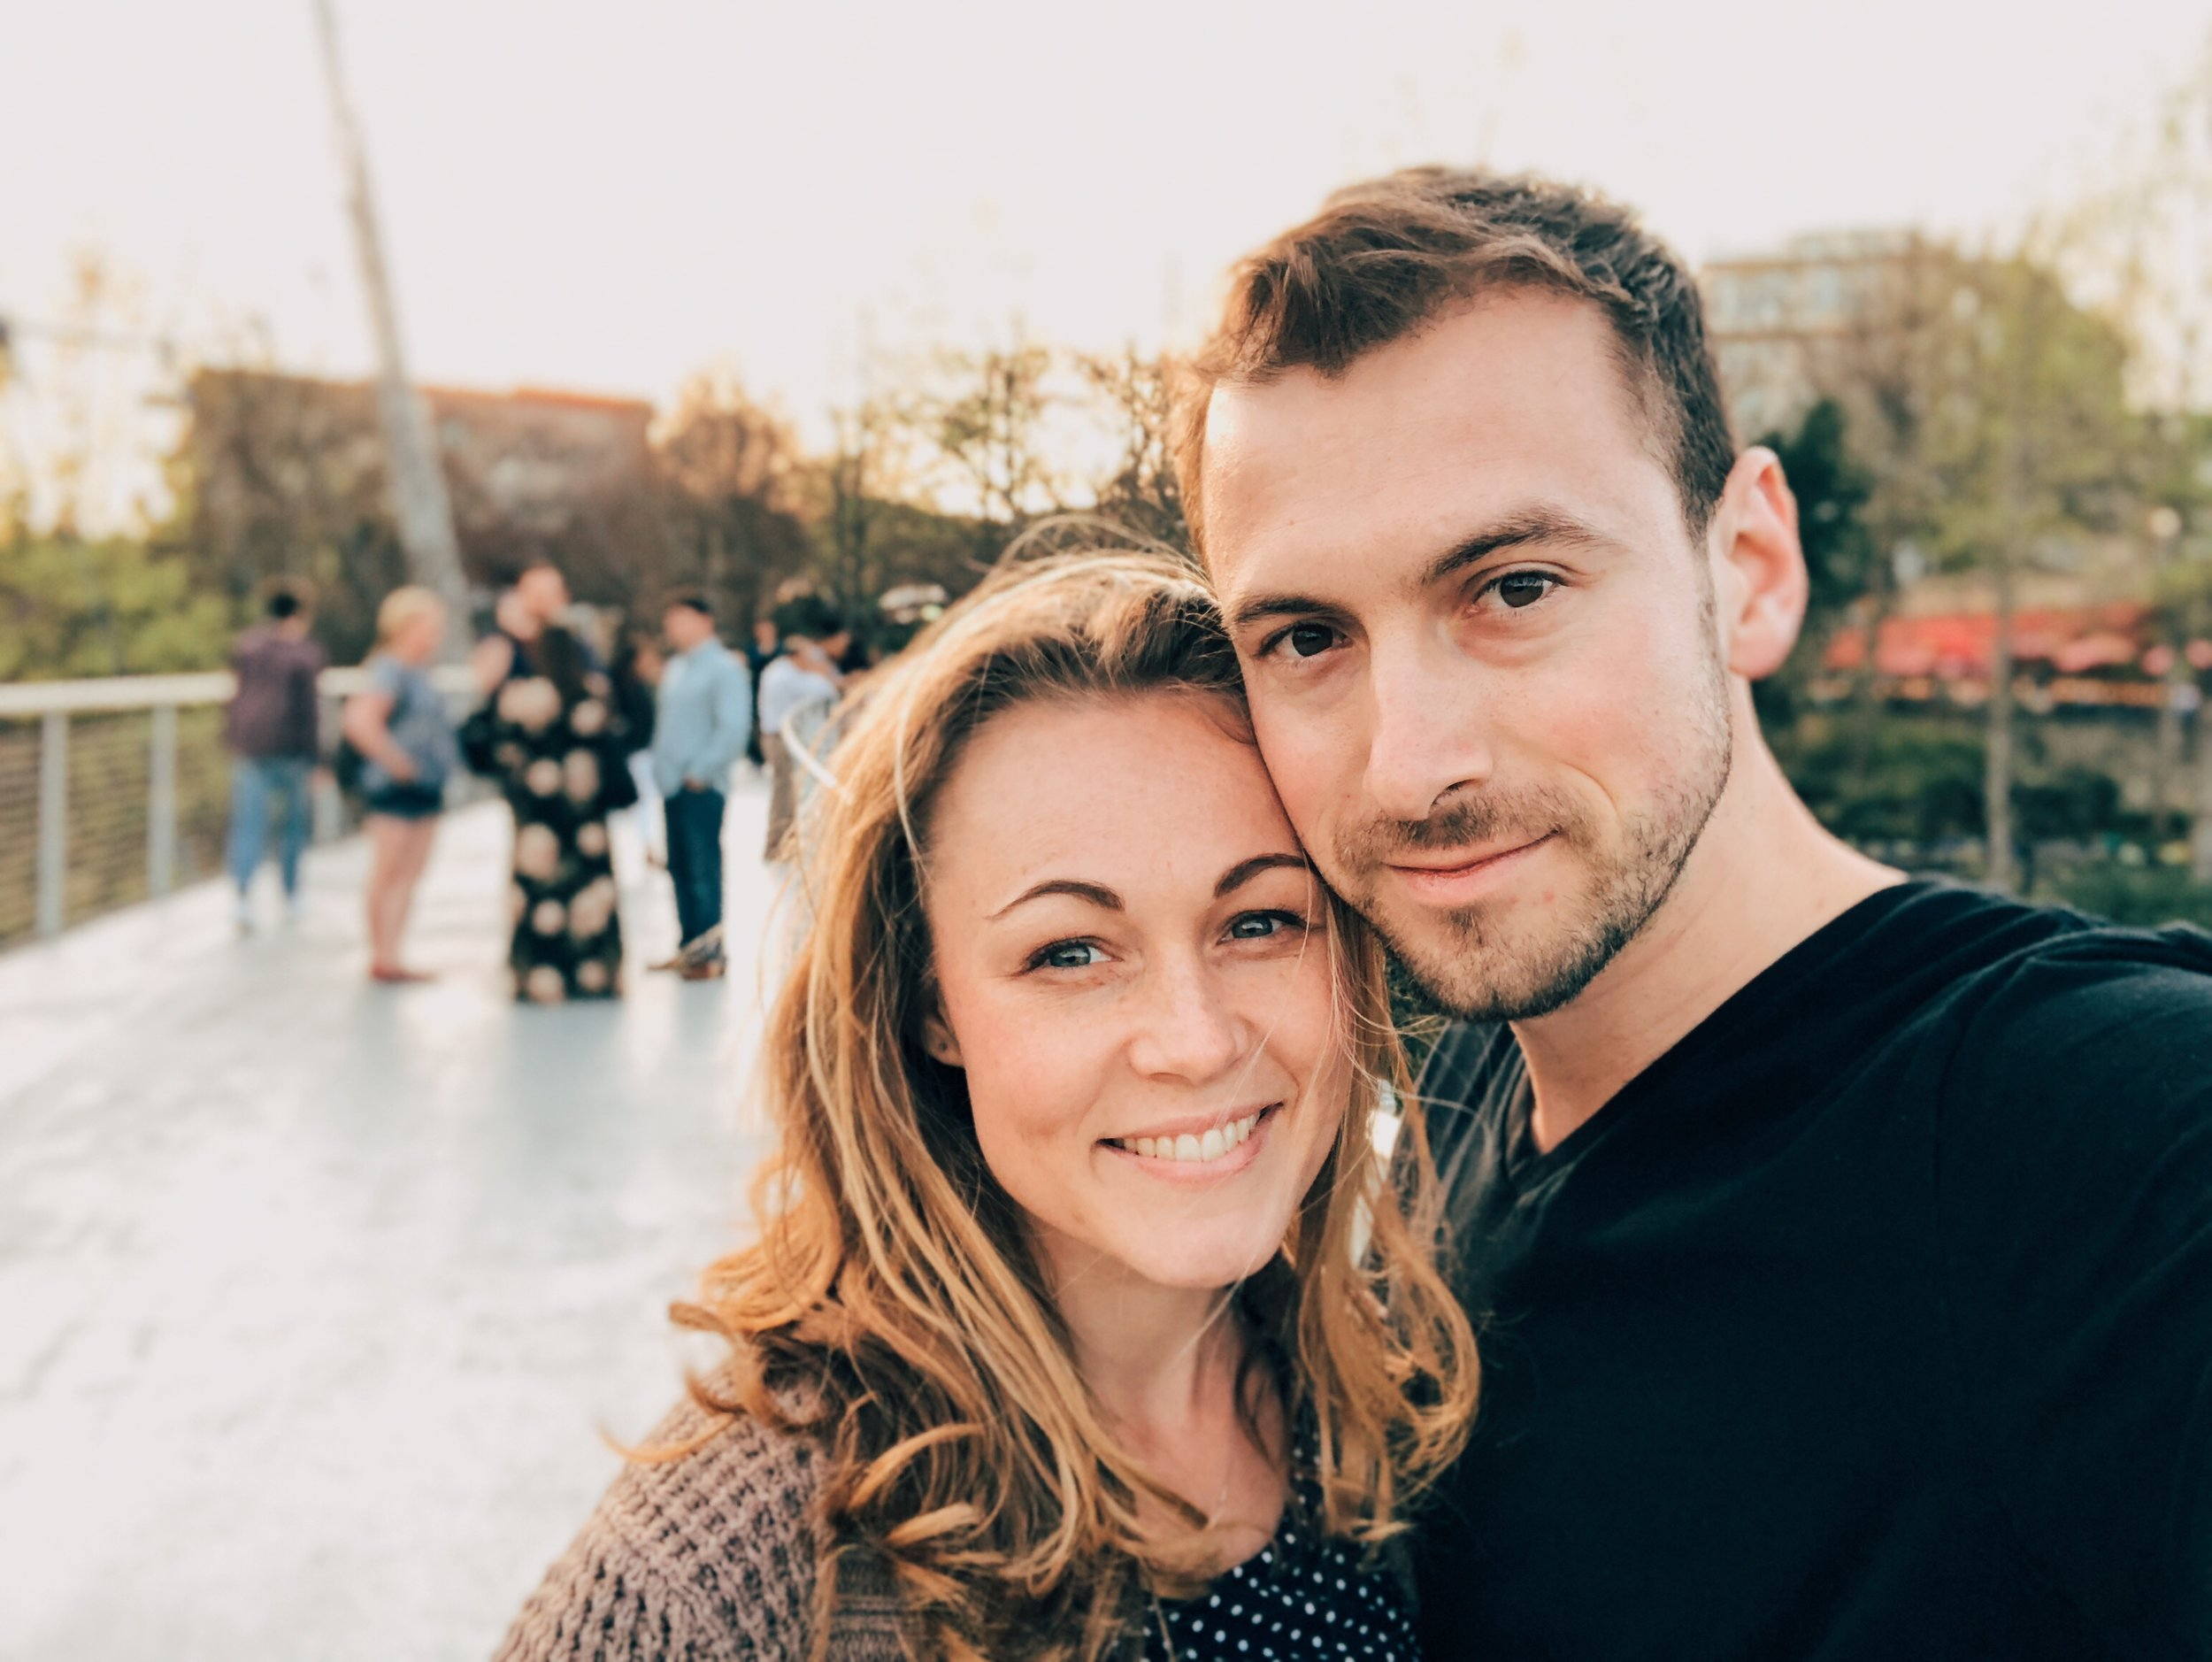 Greenville, SC with my beautiful wife